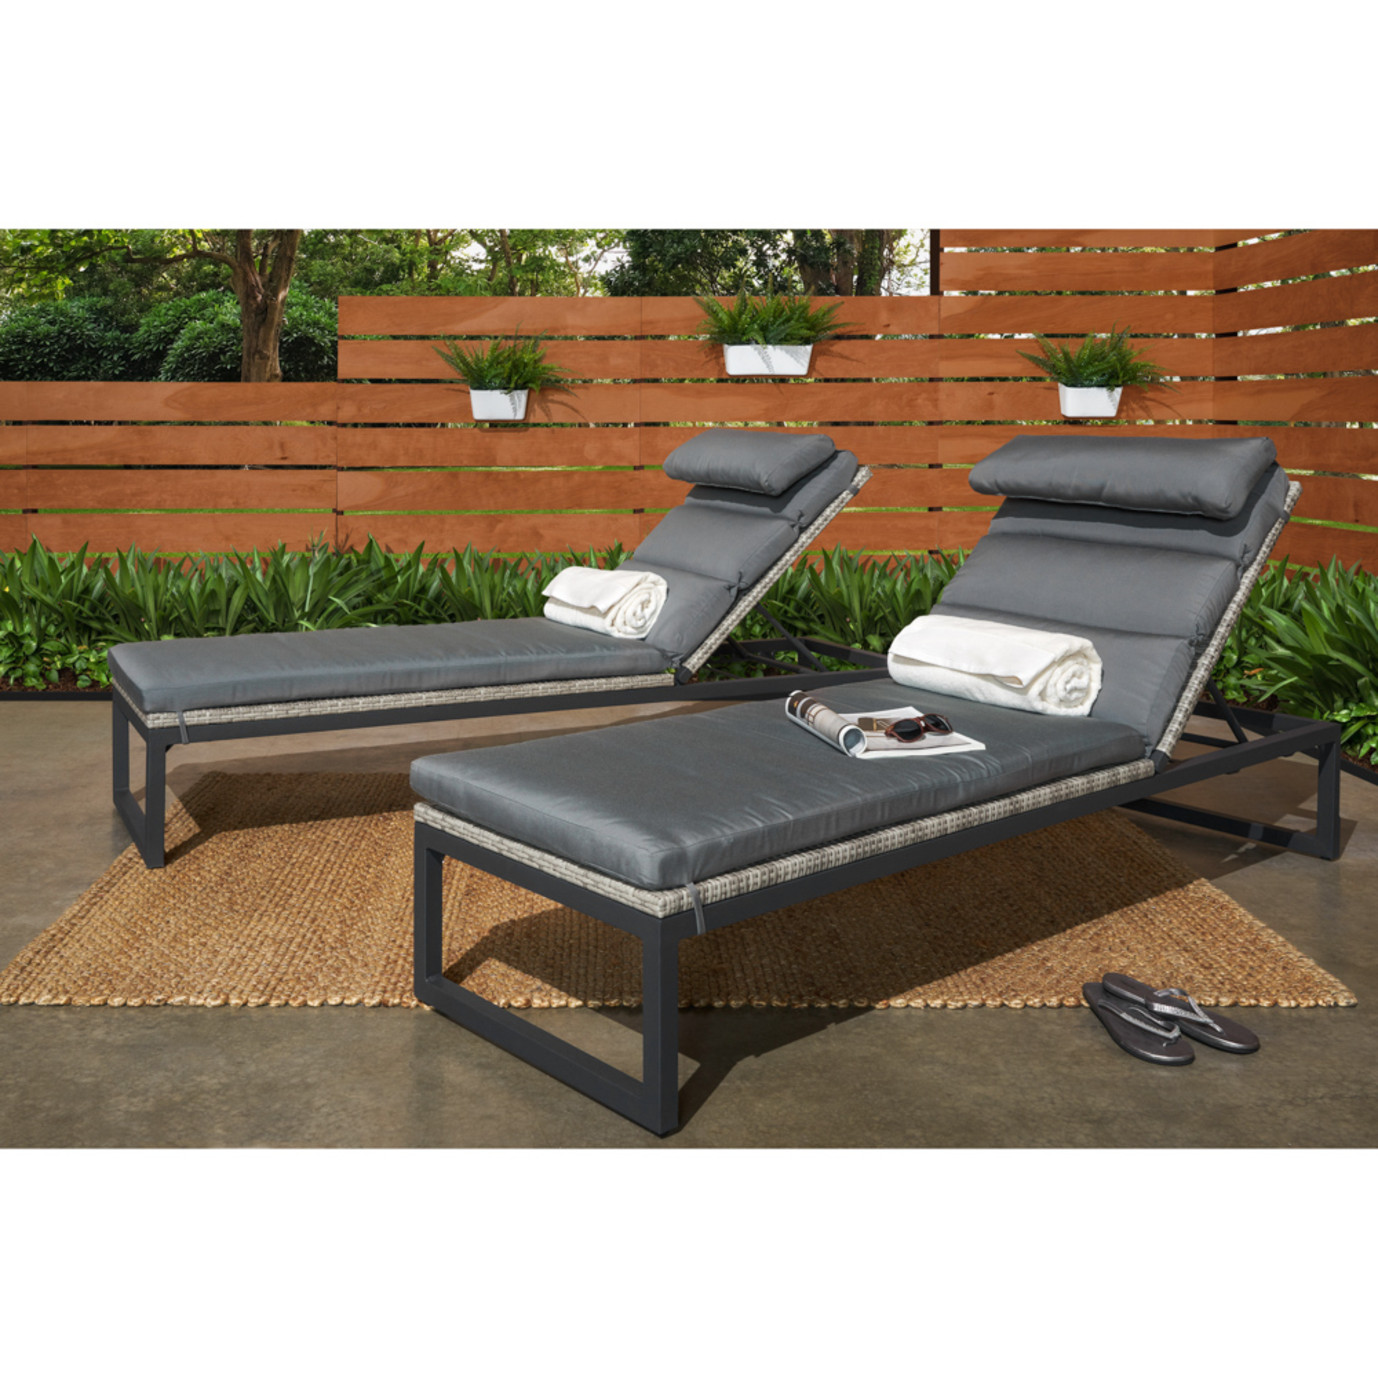 Milo™ Grey Chaise Lounges - Charcoal Grey